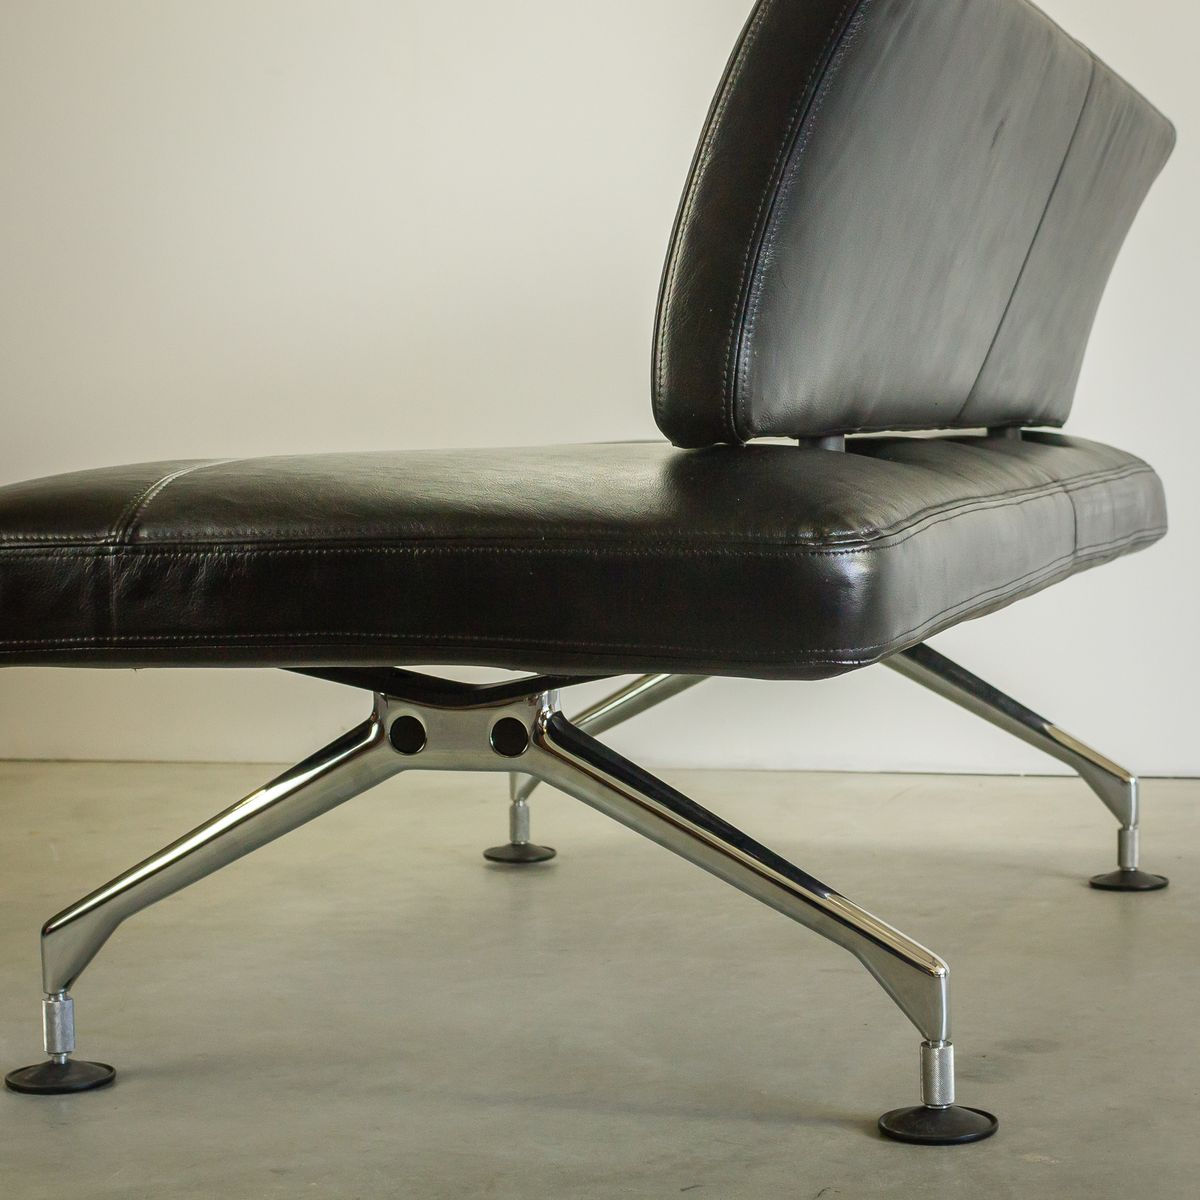 area leather sofa by antonio citterio for vitra 1998 for sale at pamono. Black Bedroom Furniture Sets. Home Design Ideas